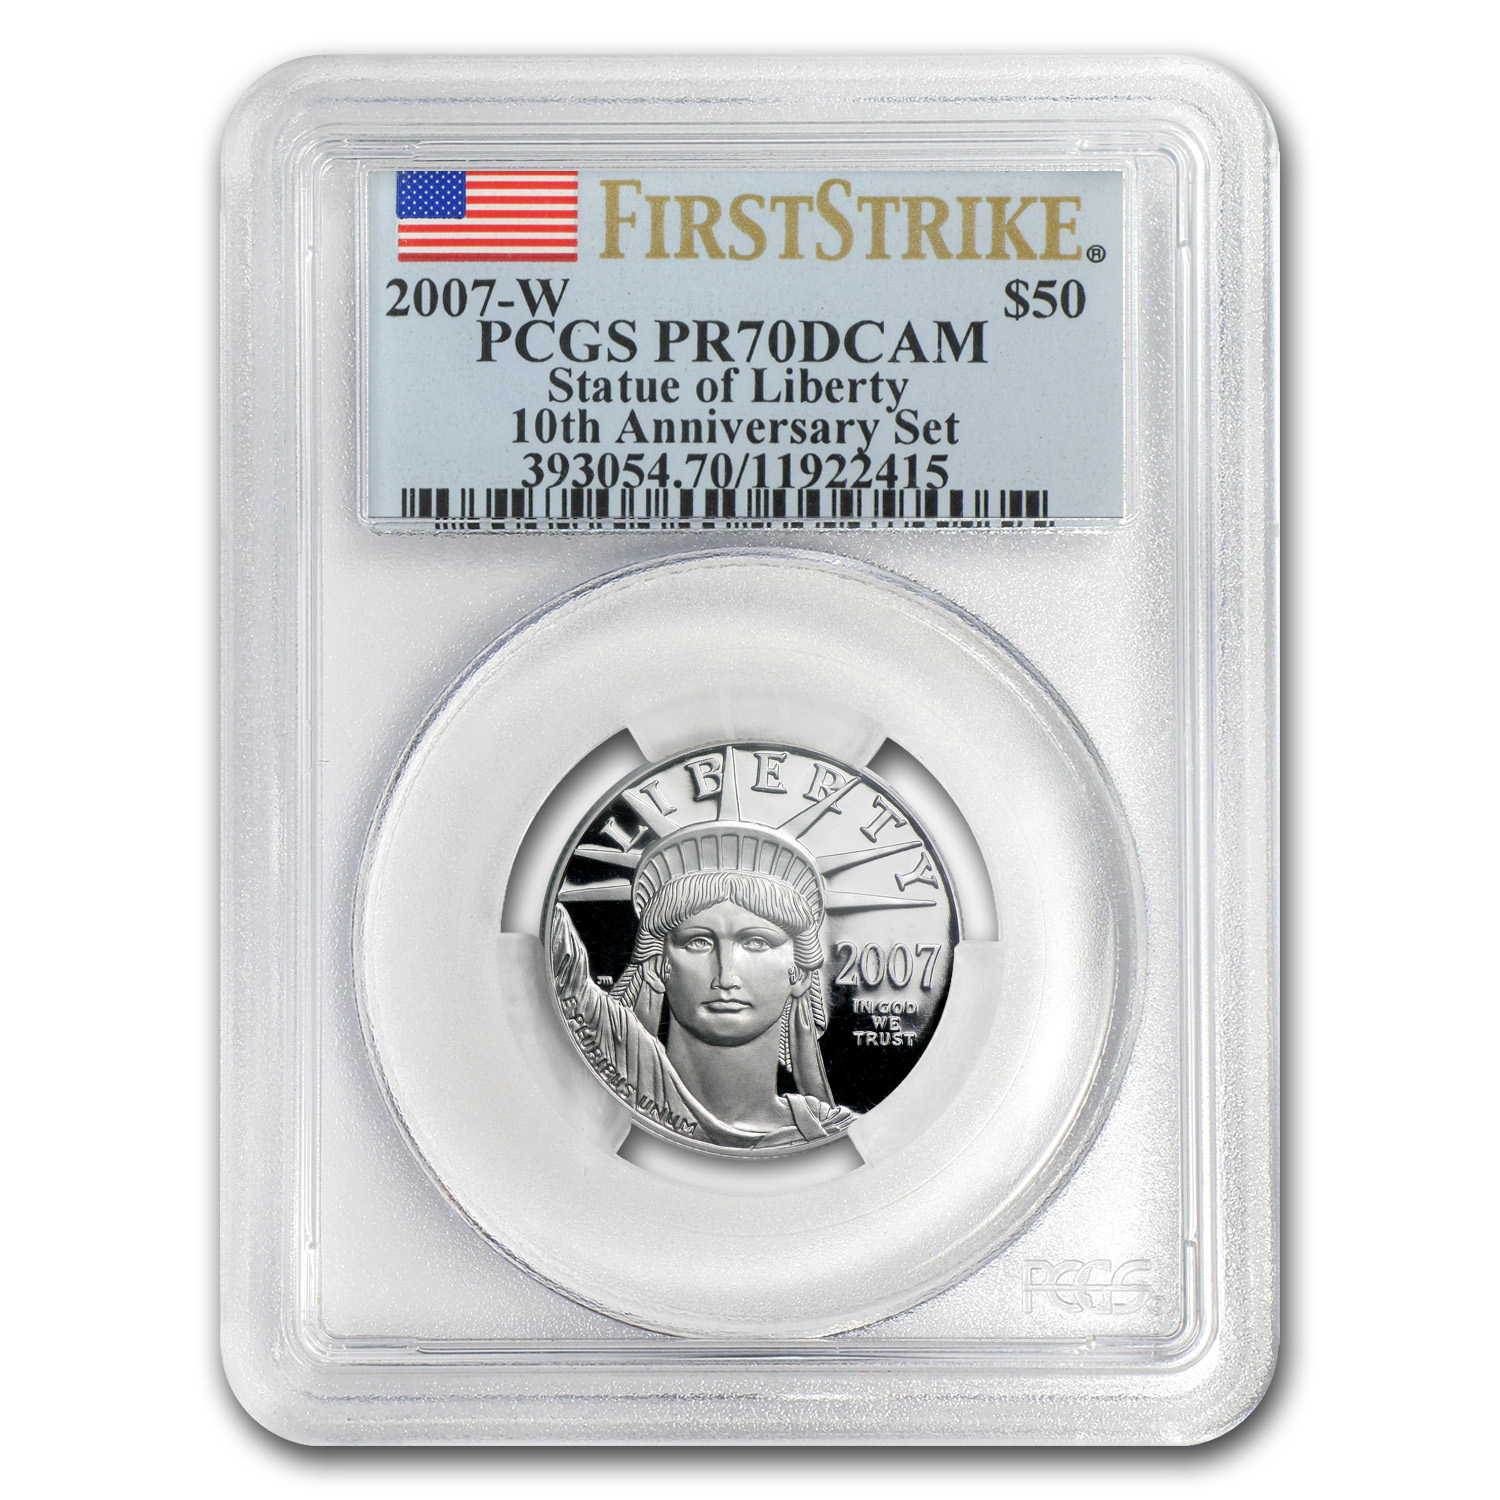 2007-W 1/2 oz Proof Platinum Eagle PR-70 PCGS (FS, 10th Anniv)